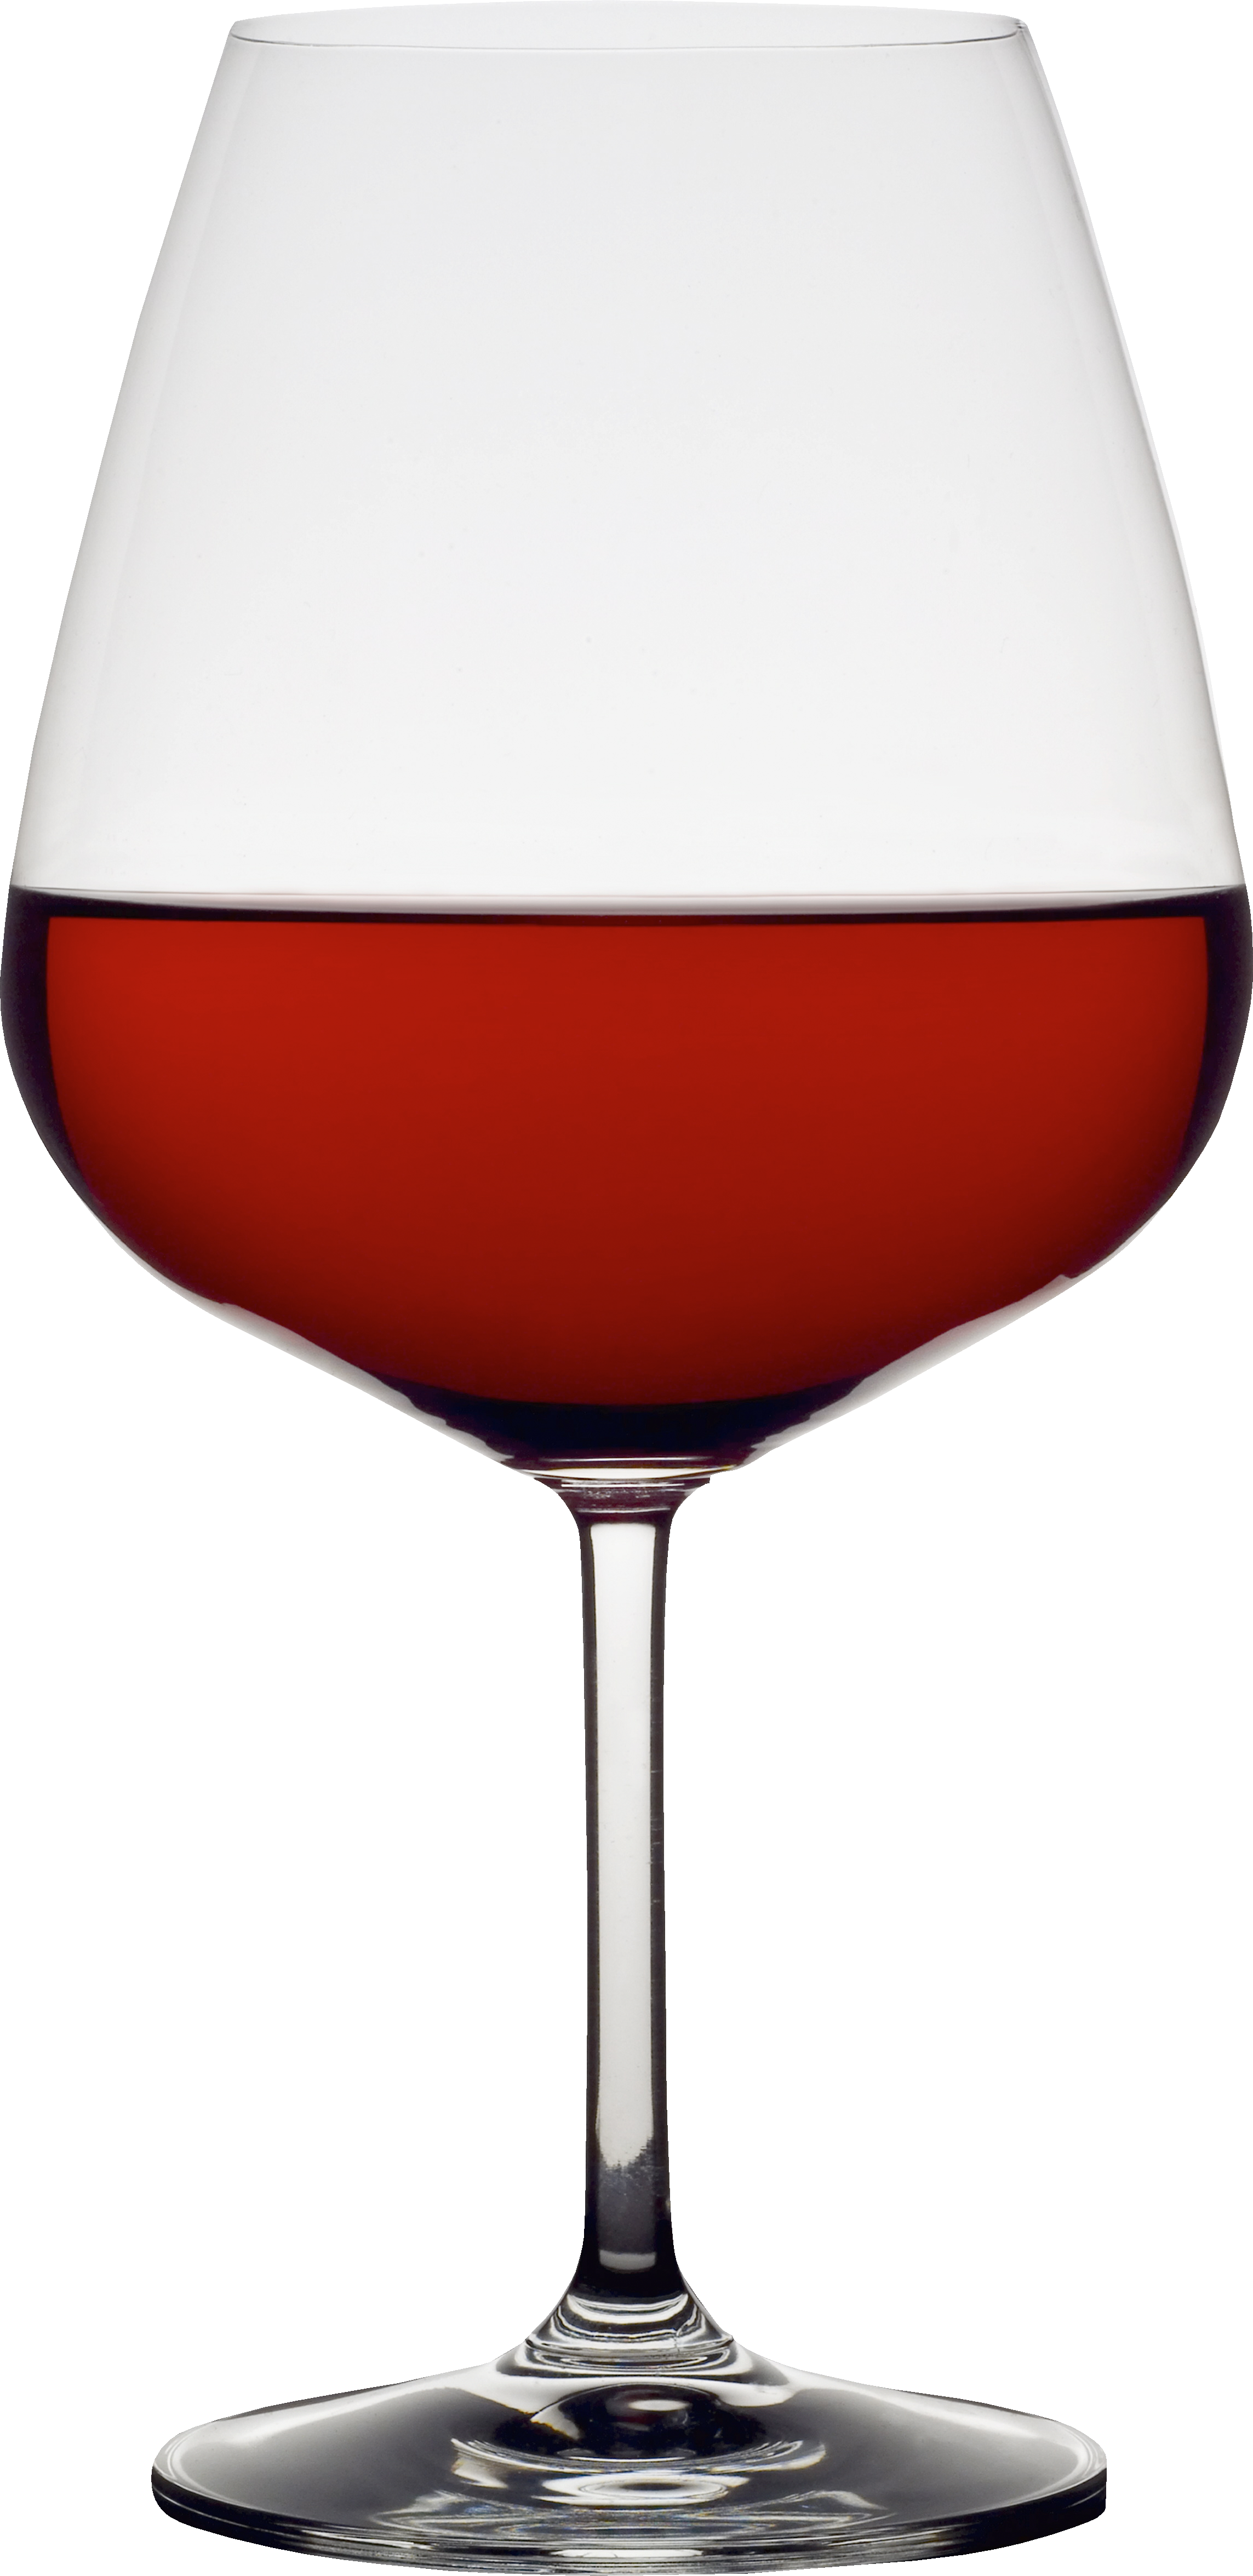 Wine heart clipart clip transparent download Glass of Wine Twenty-five   Isolated Stock Photo by noBACKS.com clip transparent download